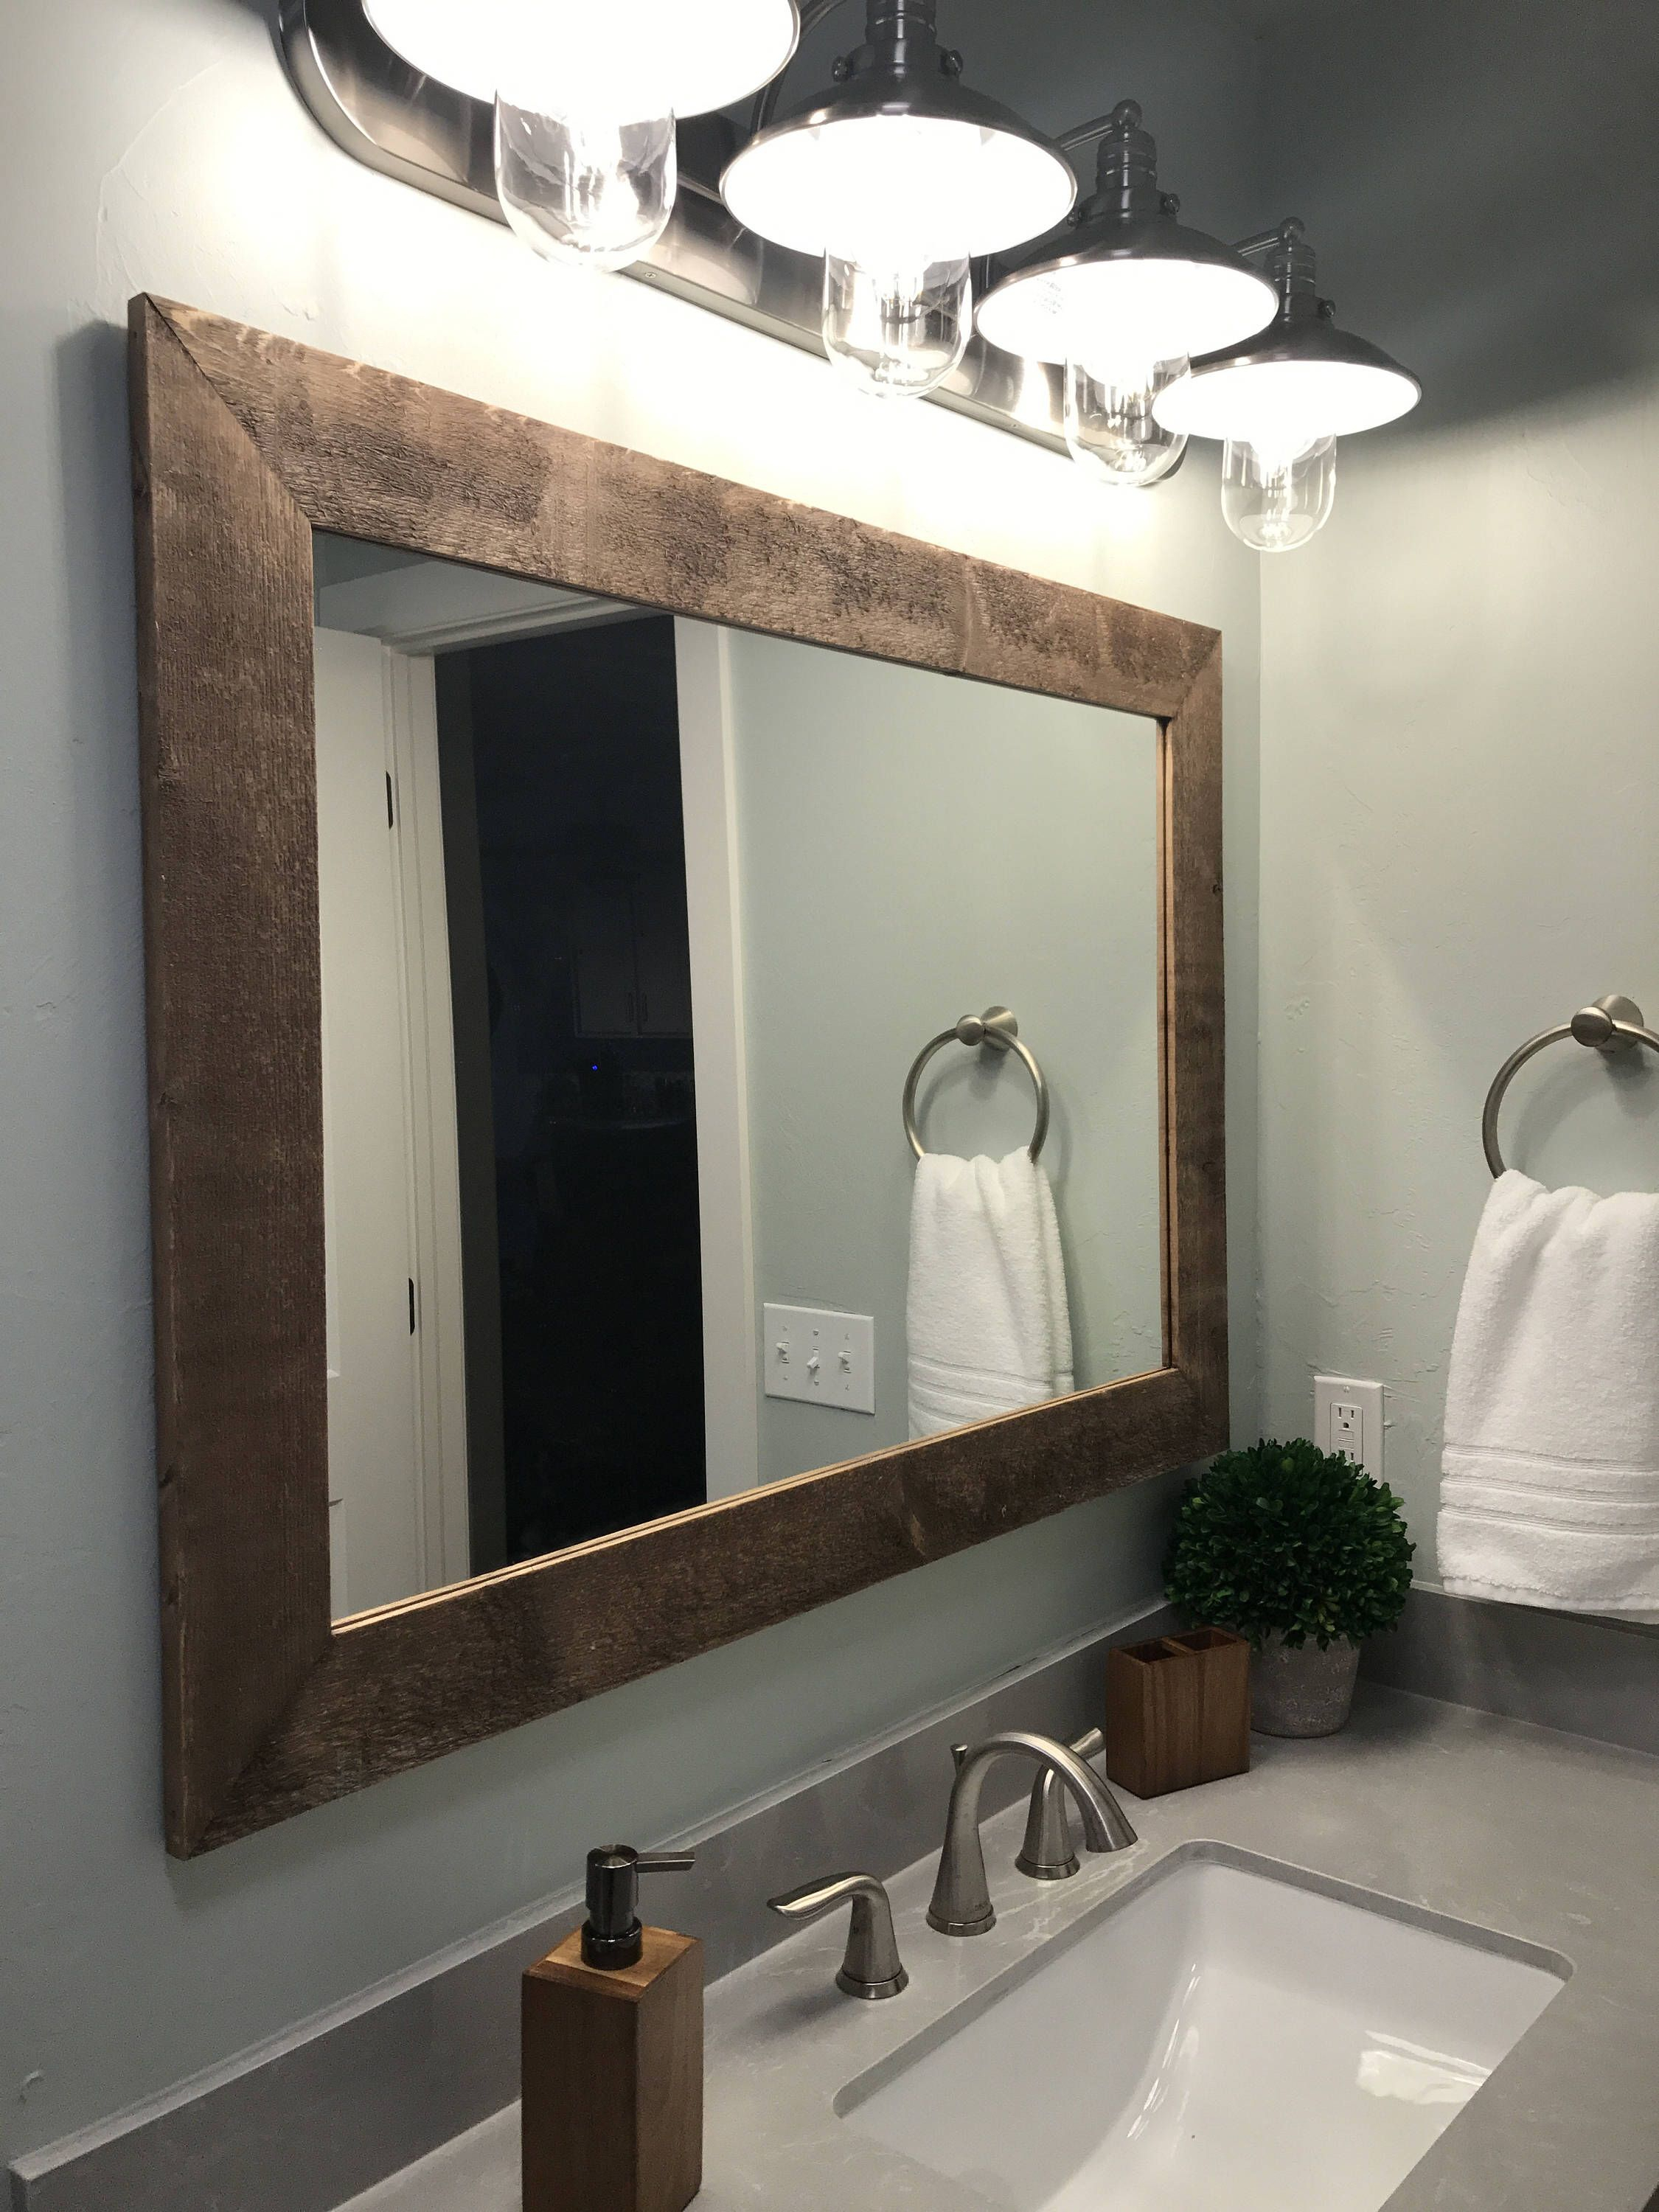 Shiplap Reclaimed Wood Mirror Shown In Special Walnut, 4 Pertaining To Landover Rustic Distressed Bathroom/vanity Mirrors (View 26 of 30)